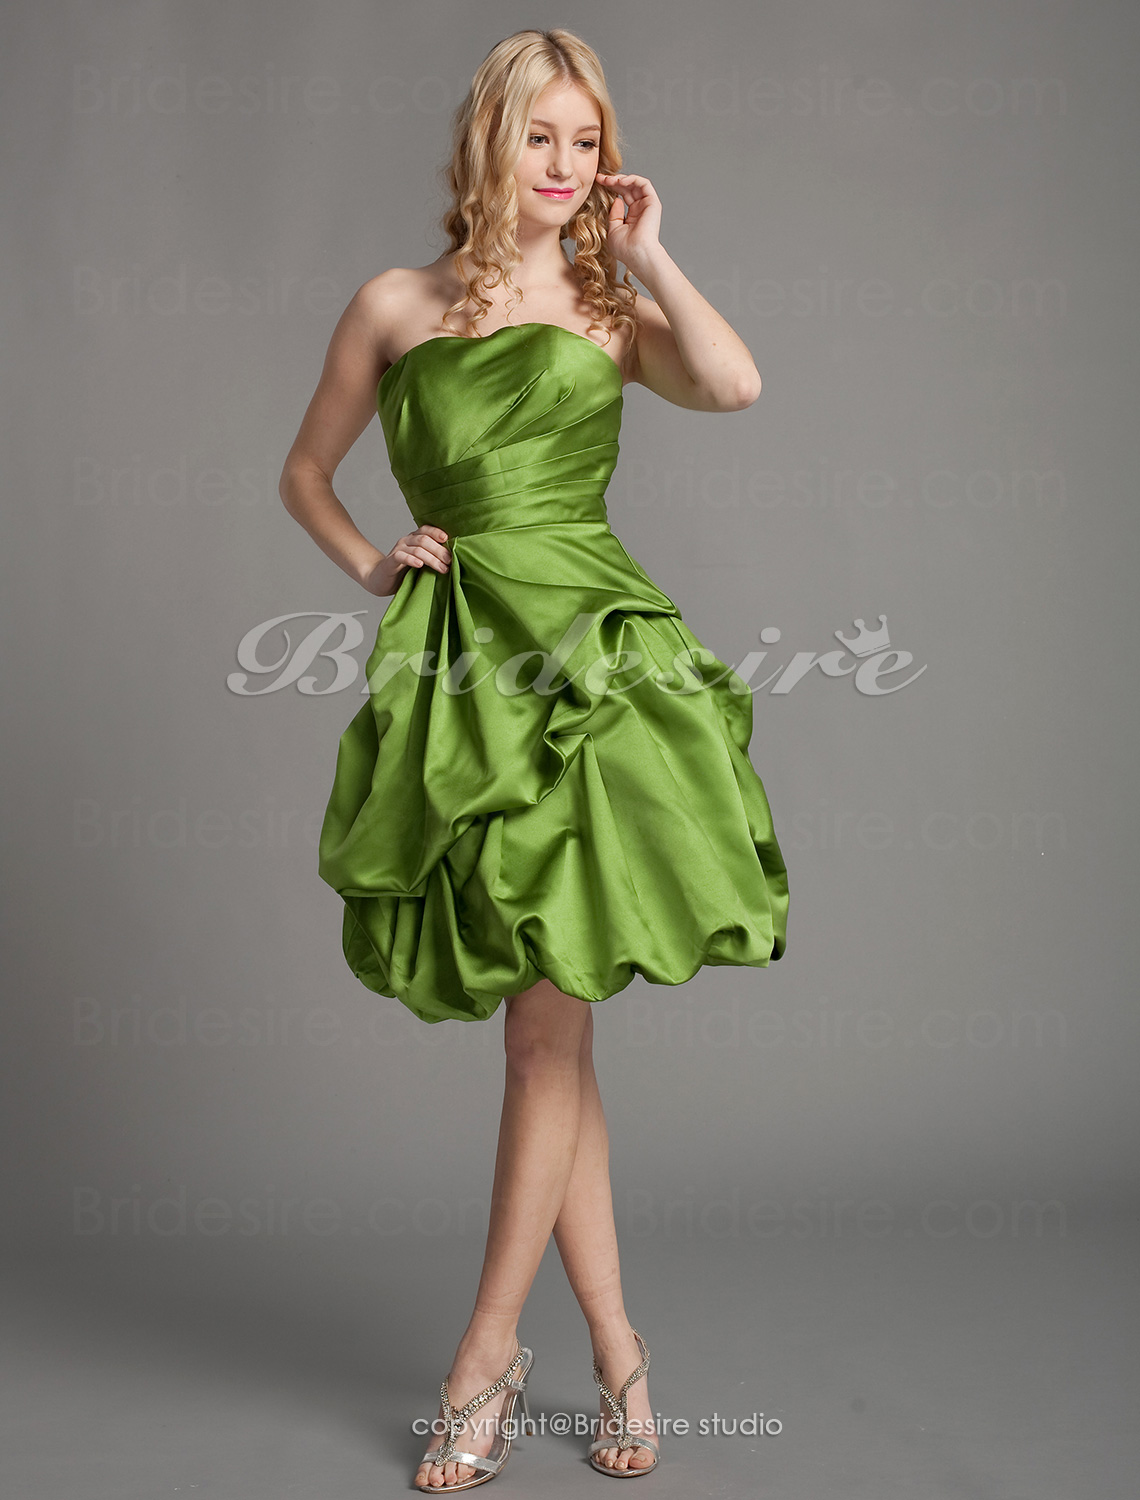 A-line Satin Knee-length Strapless Bridesmaid/ Cocktail Dress